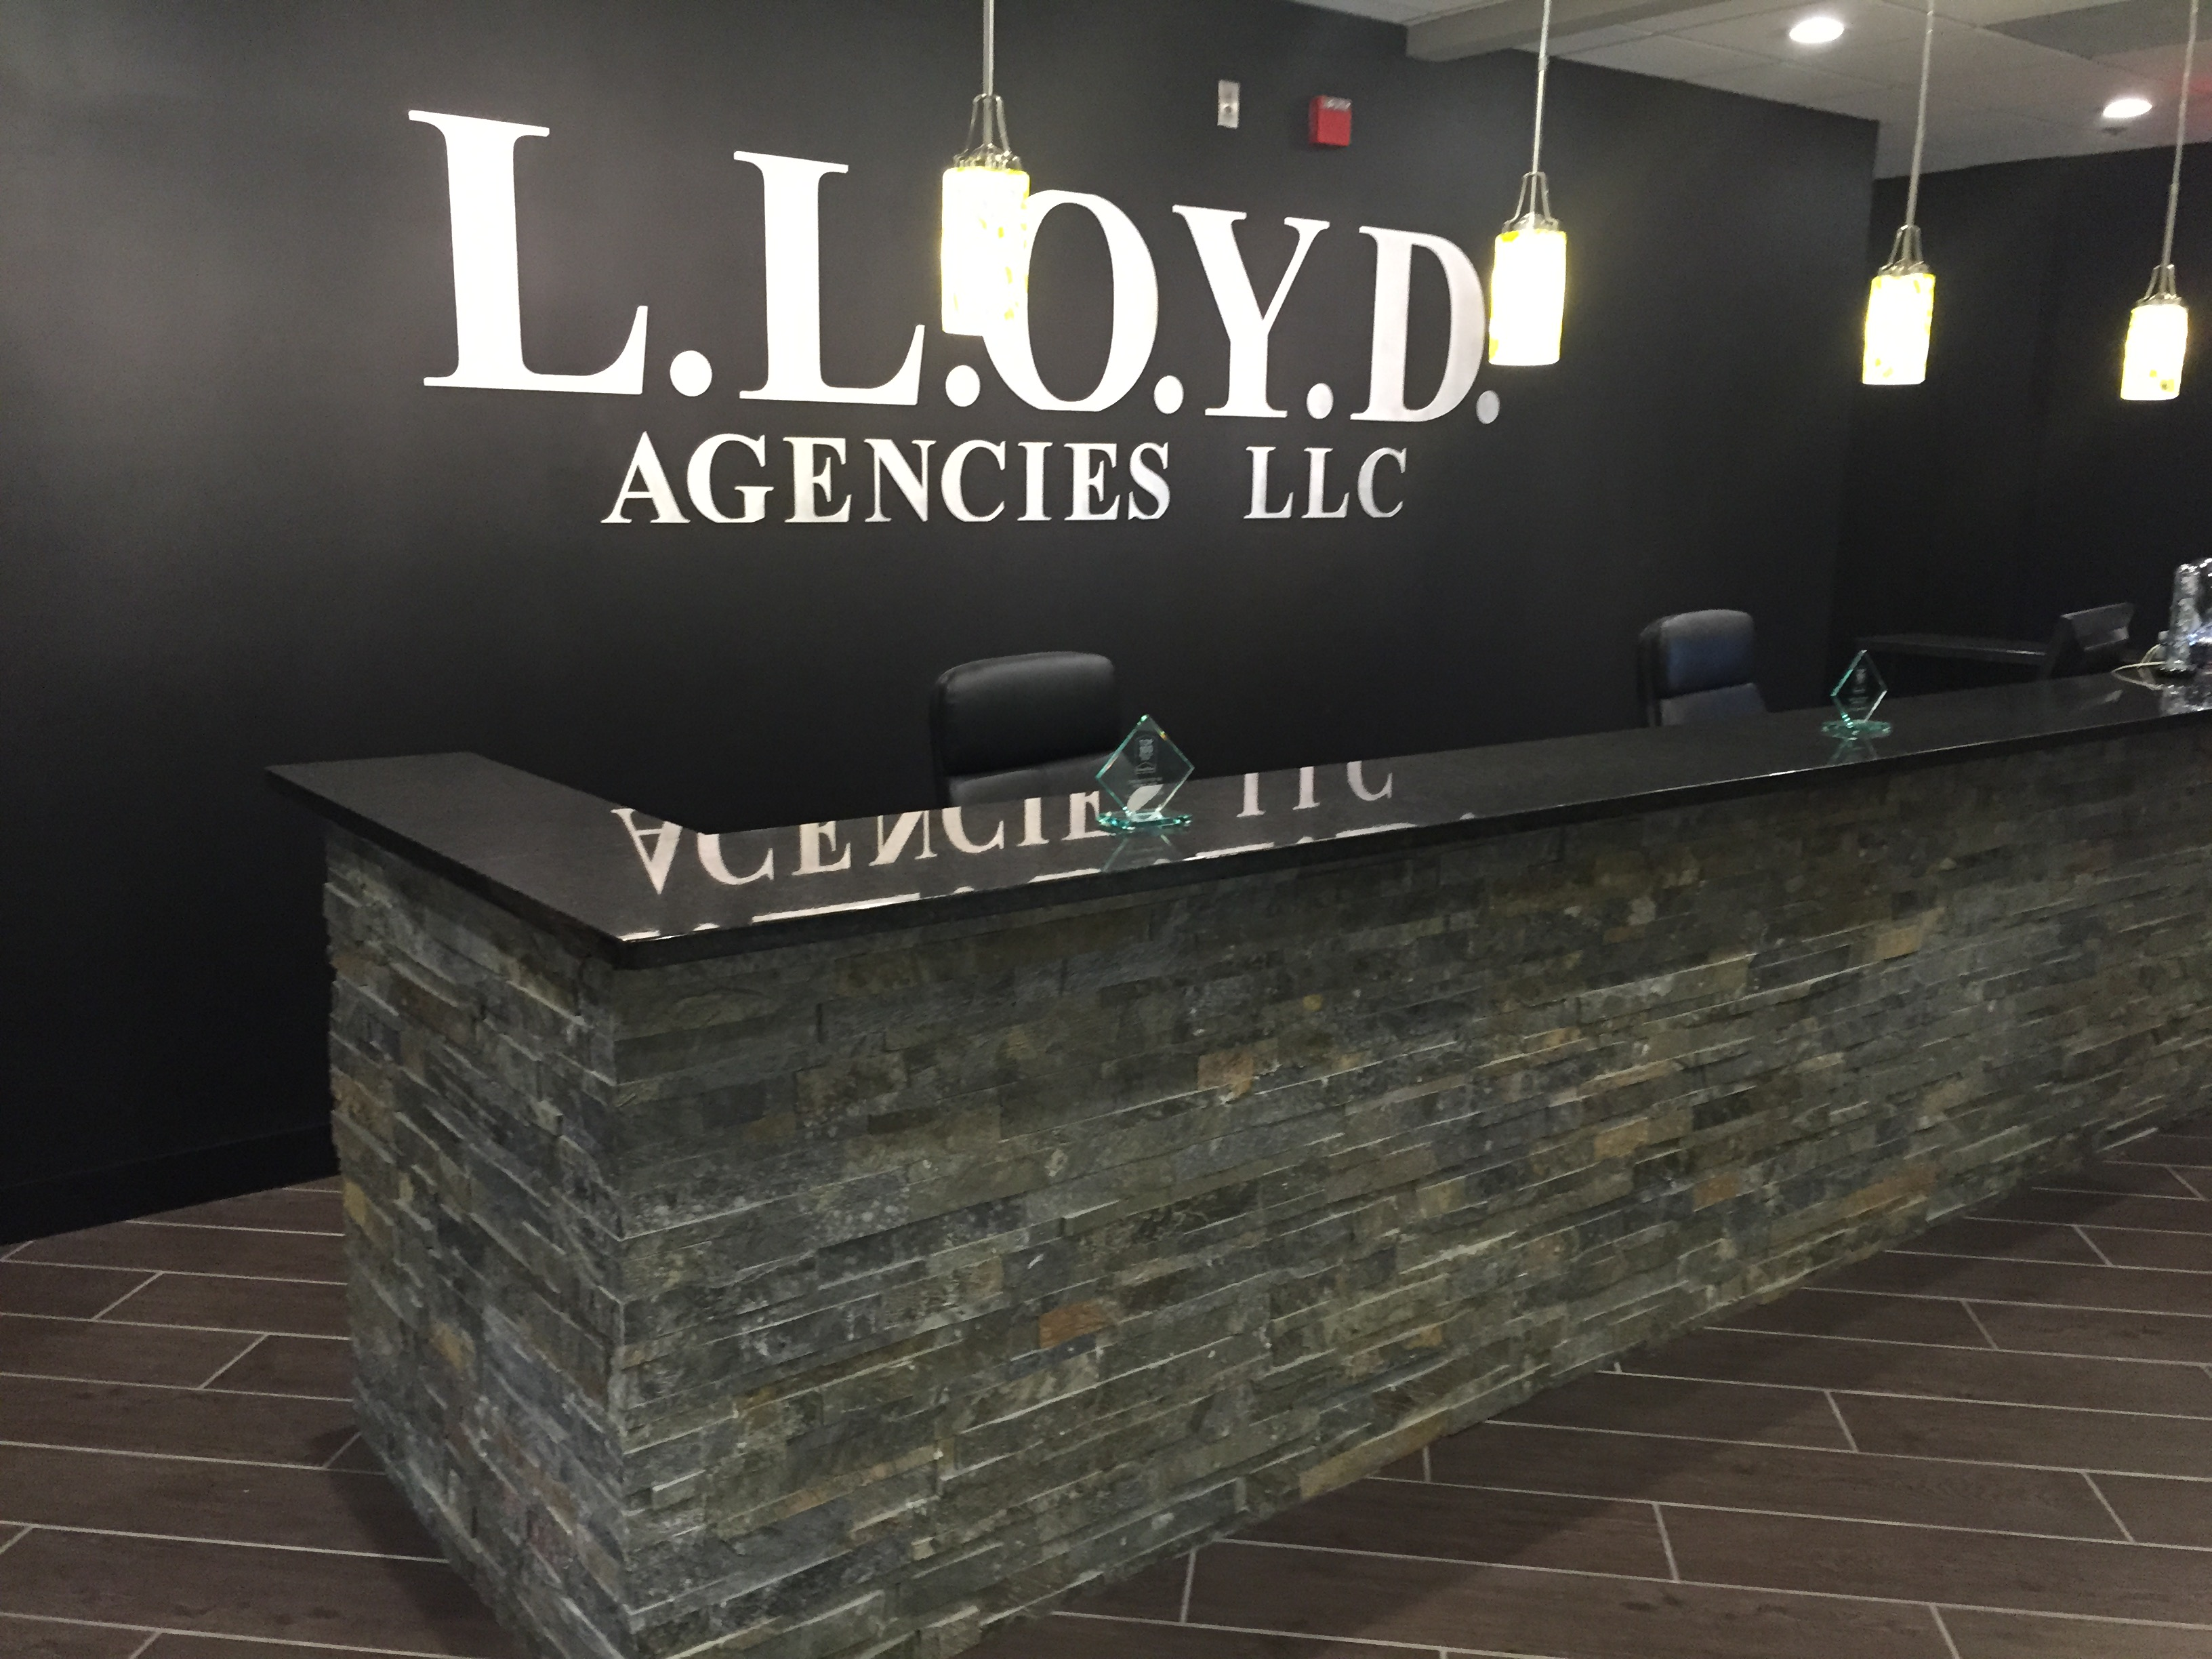 Lloyd agencies lobby side view